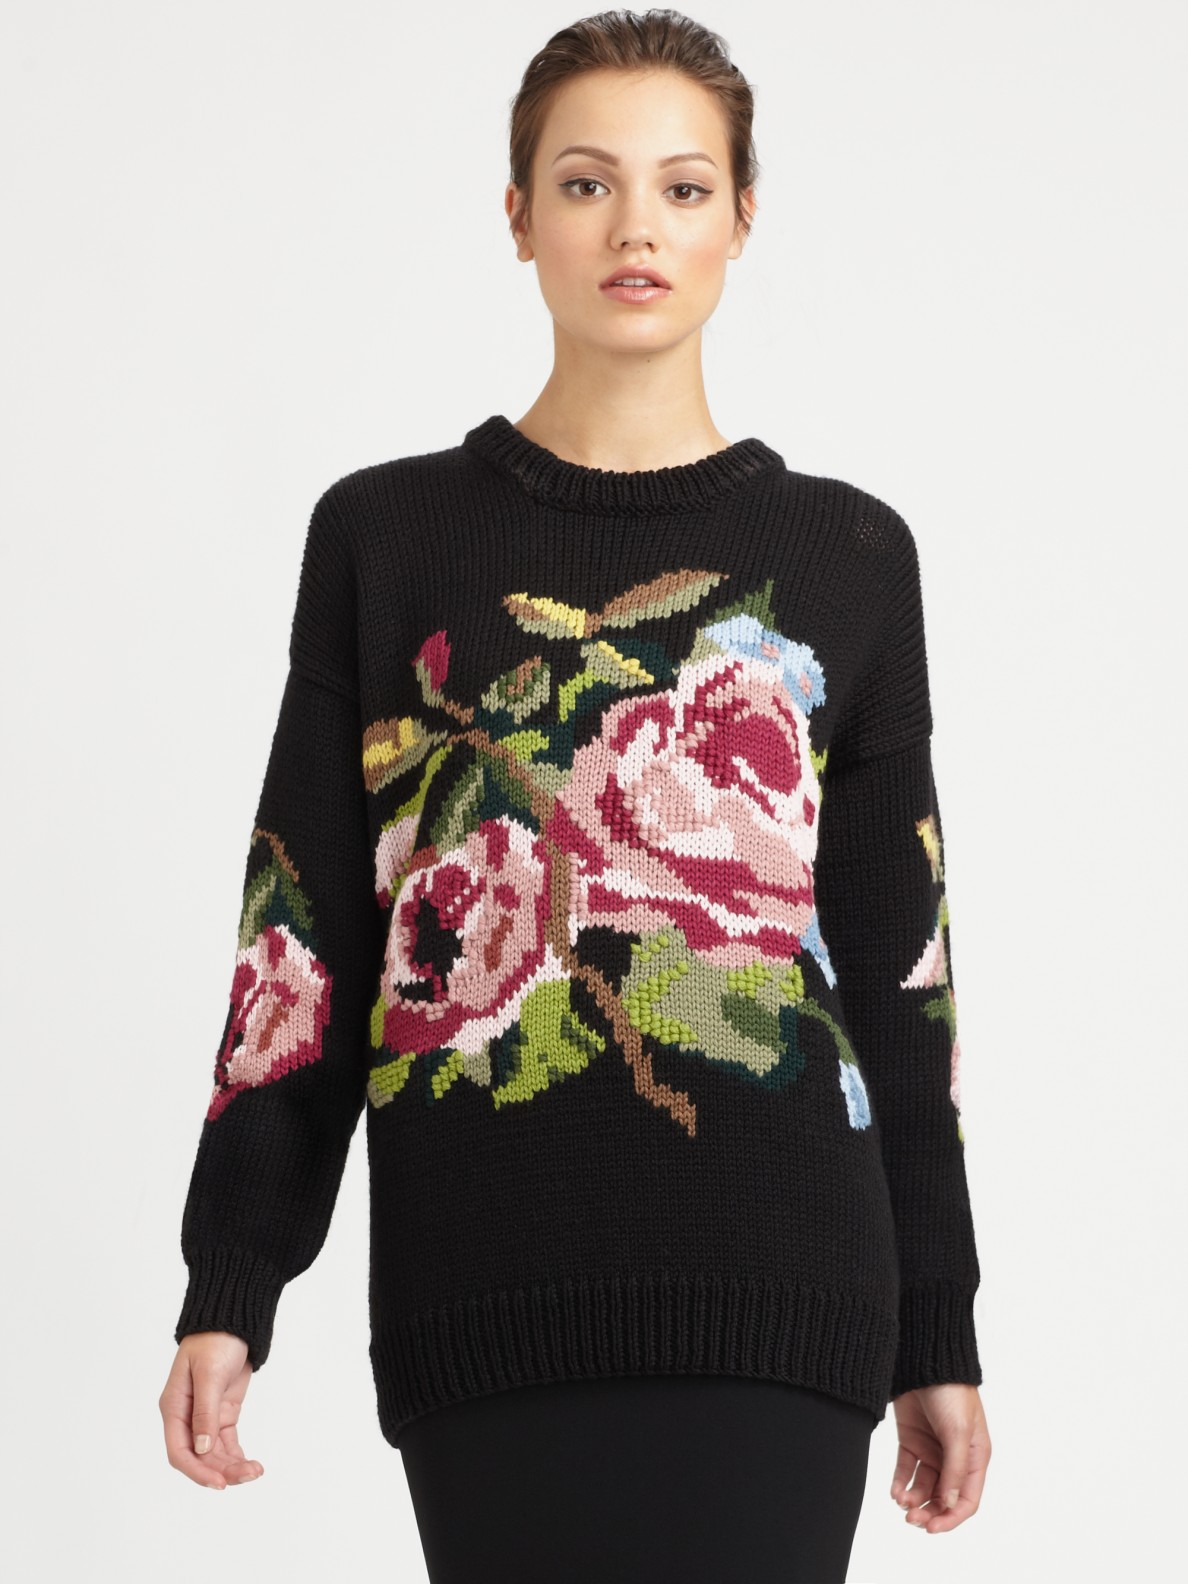 Dolce & gabbana Wool Floral Print Sweater in Black | Lyst